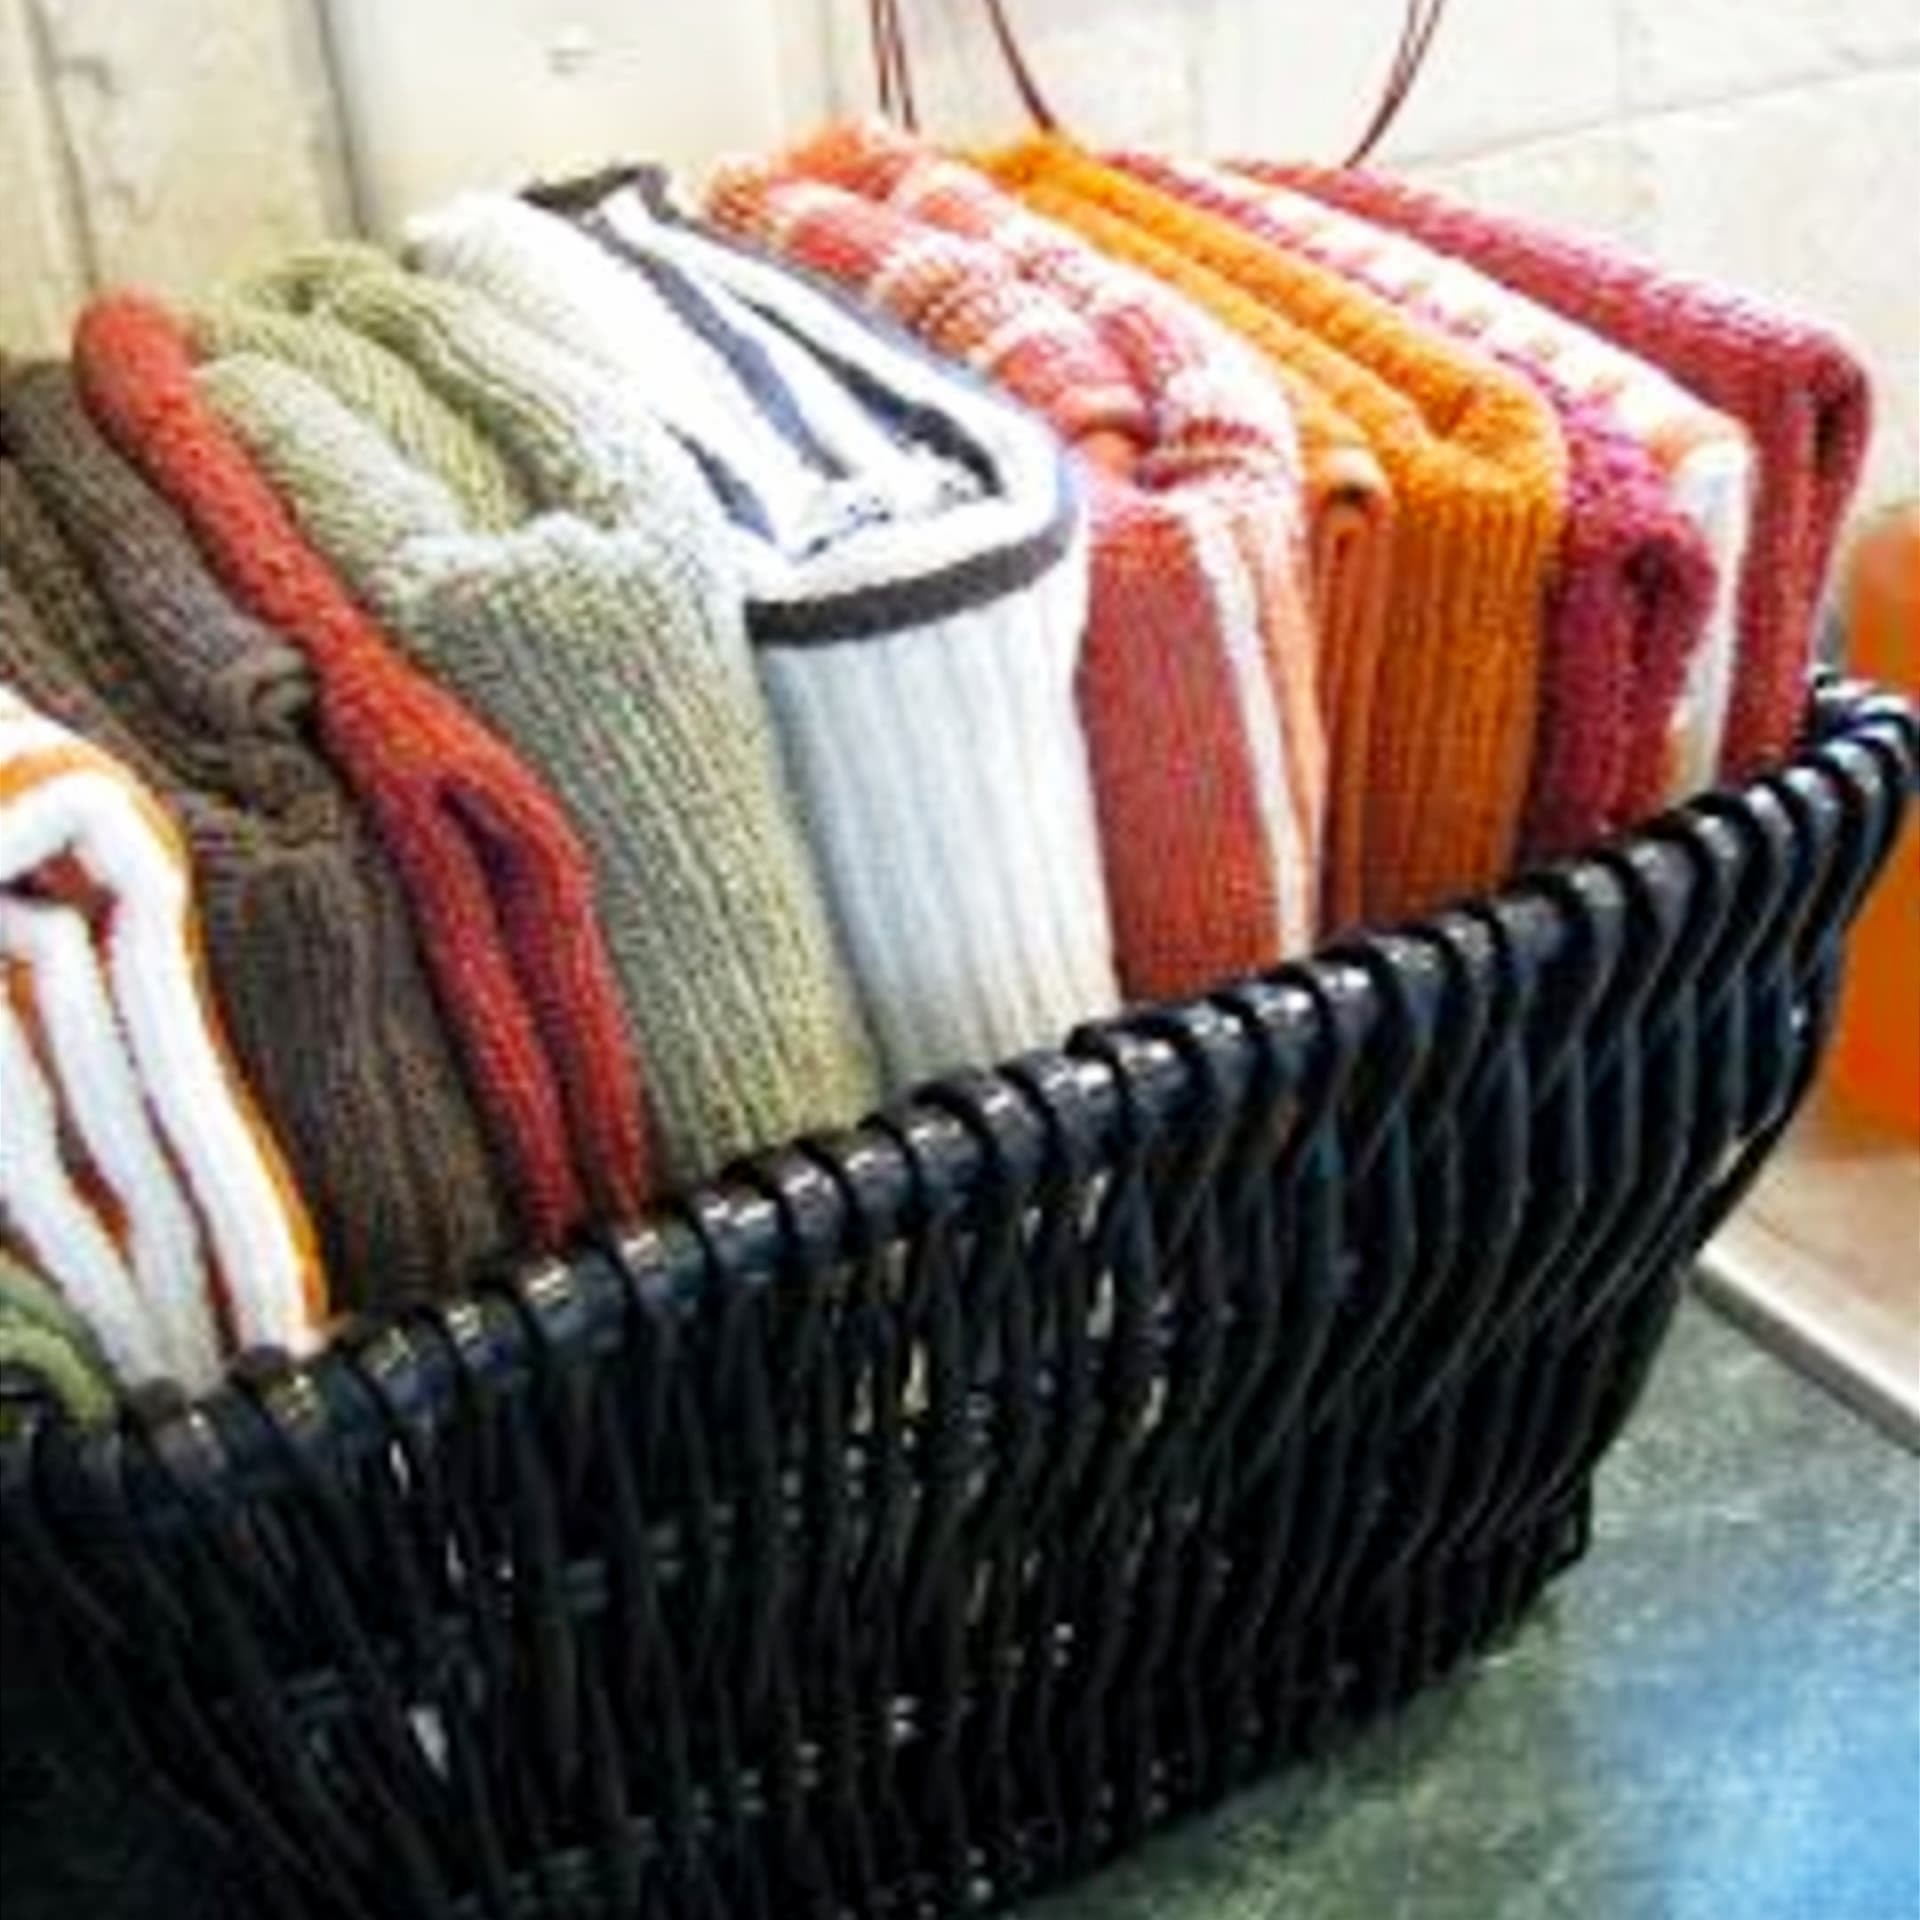 kitchen clutter solutions - declutter kitchen countertops - dish towel storage and organization ideas on a budget